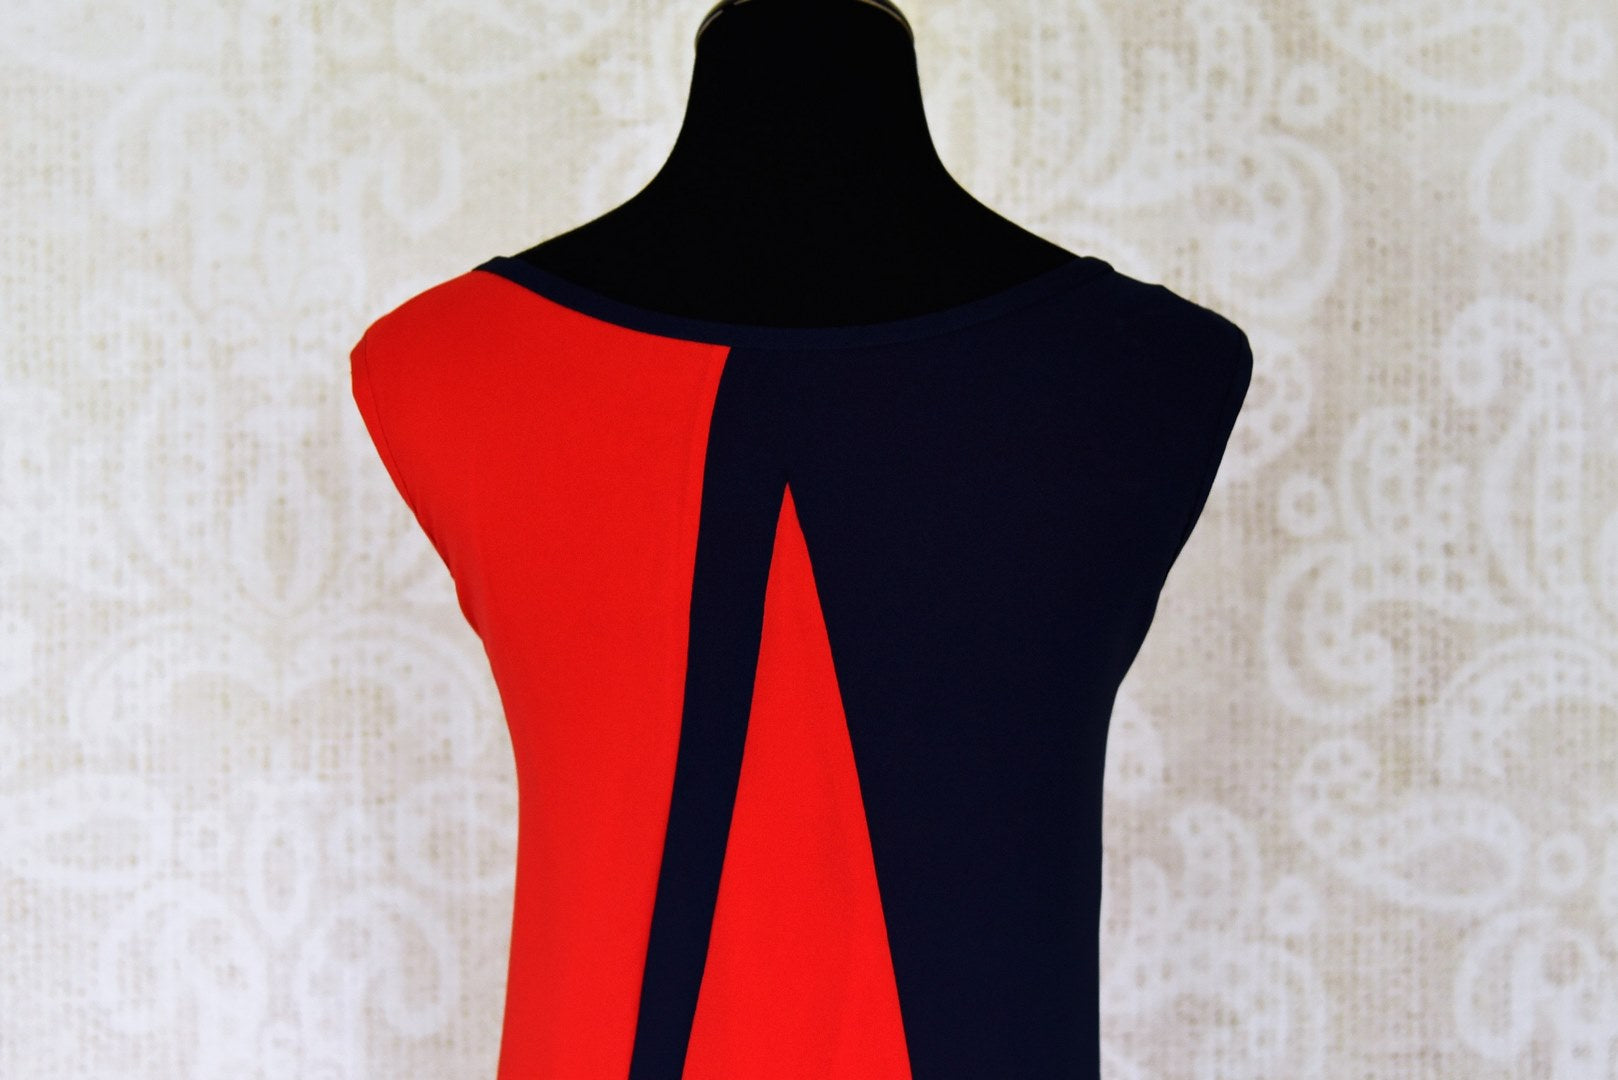 Buy red and navy blue sleeveless georgette maxi dress online in USA. Shop the latest Indian women clothing and designer dresses for weddings and special occasions from Pure Elegance Indian clothing store in USA.-back